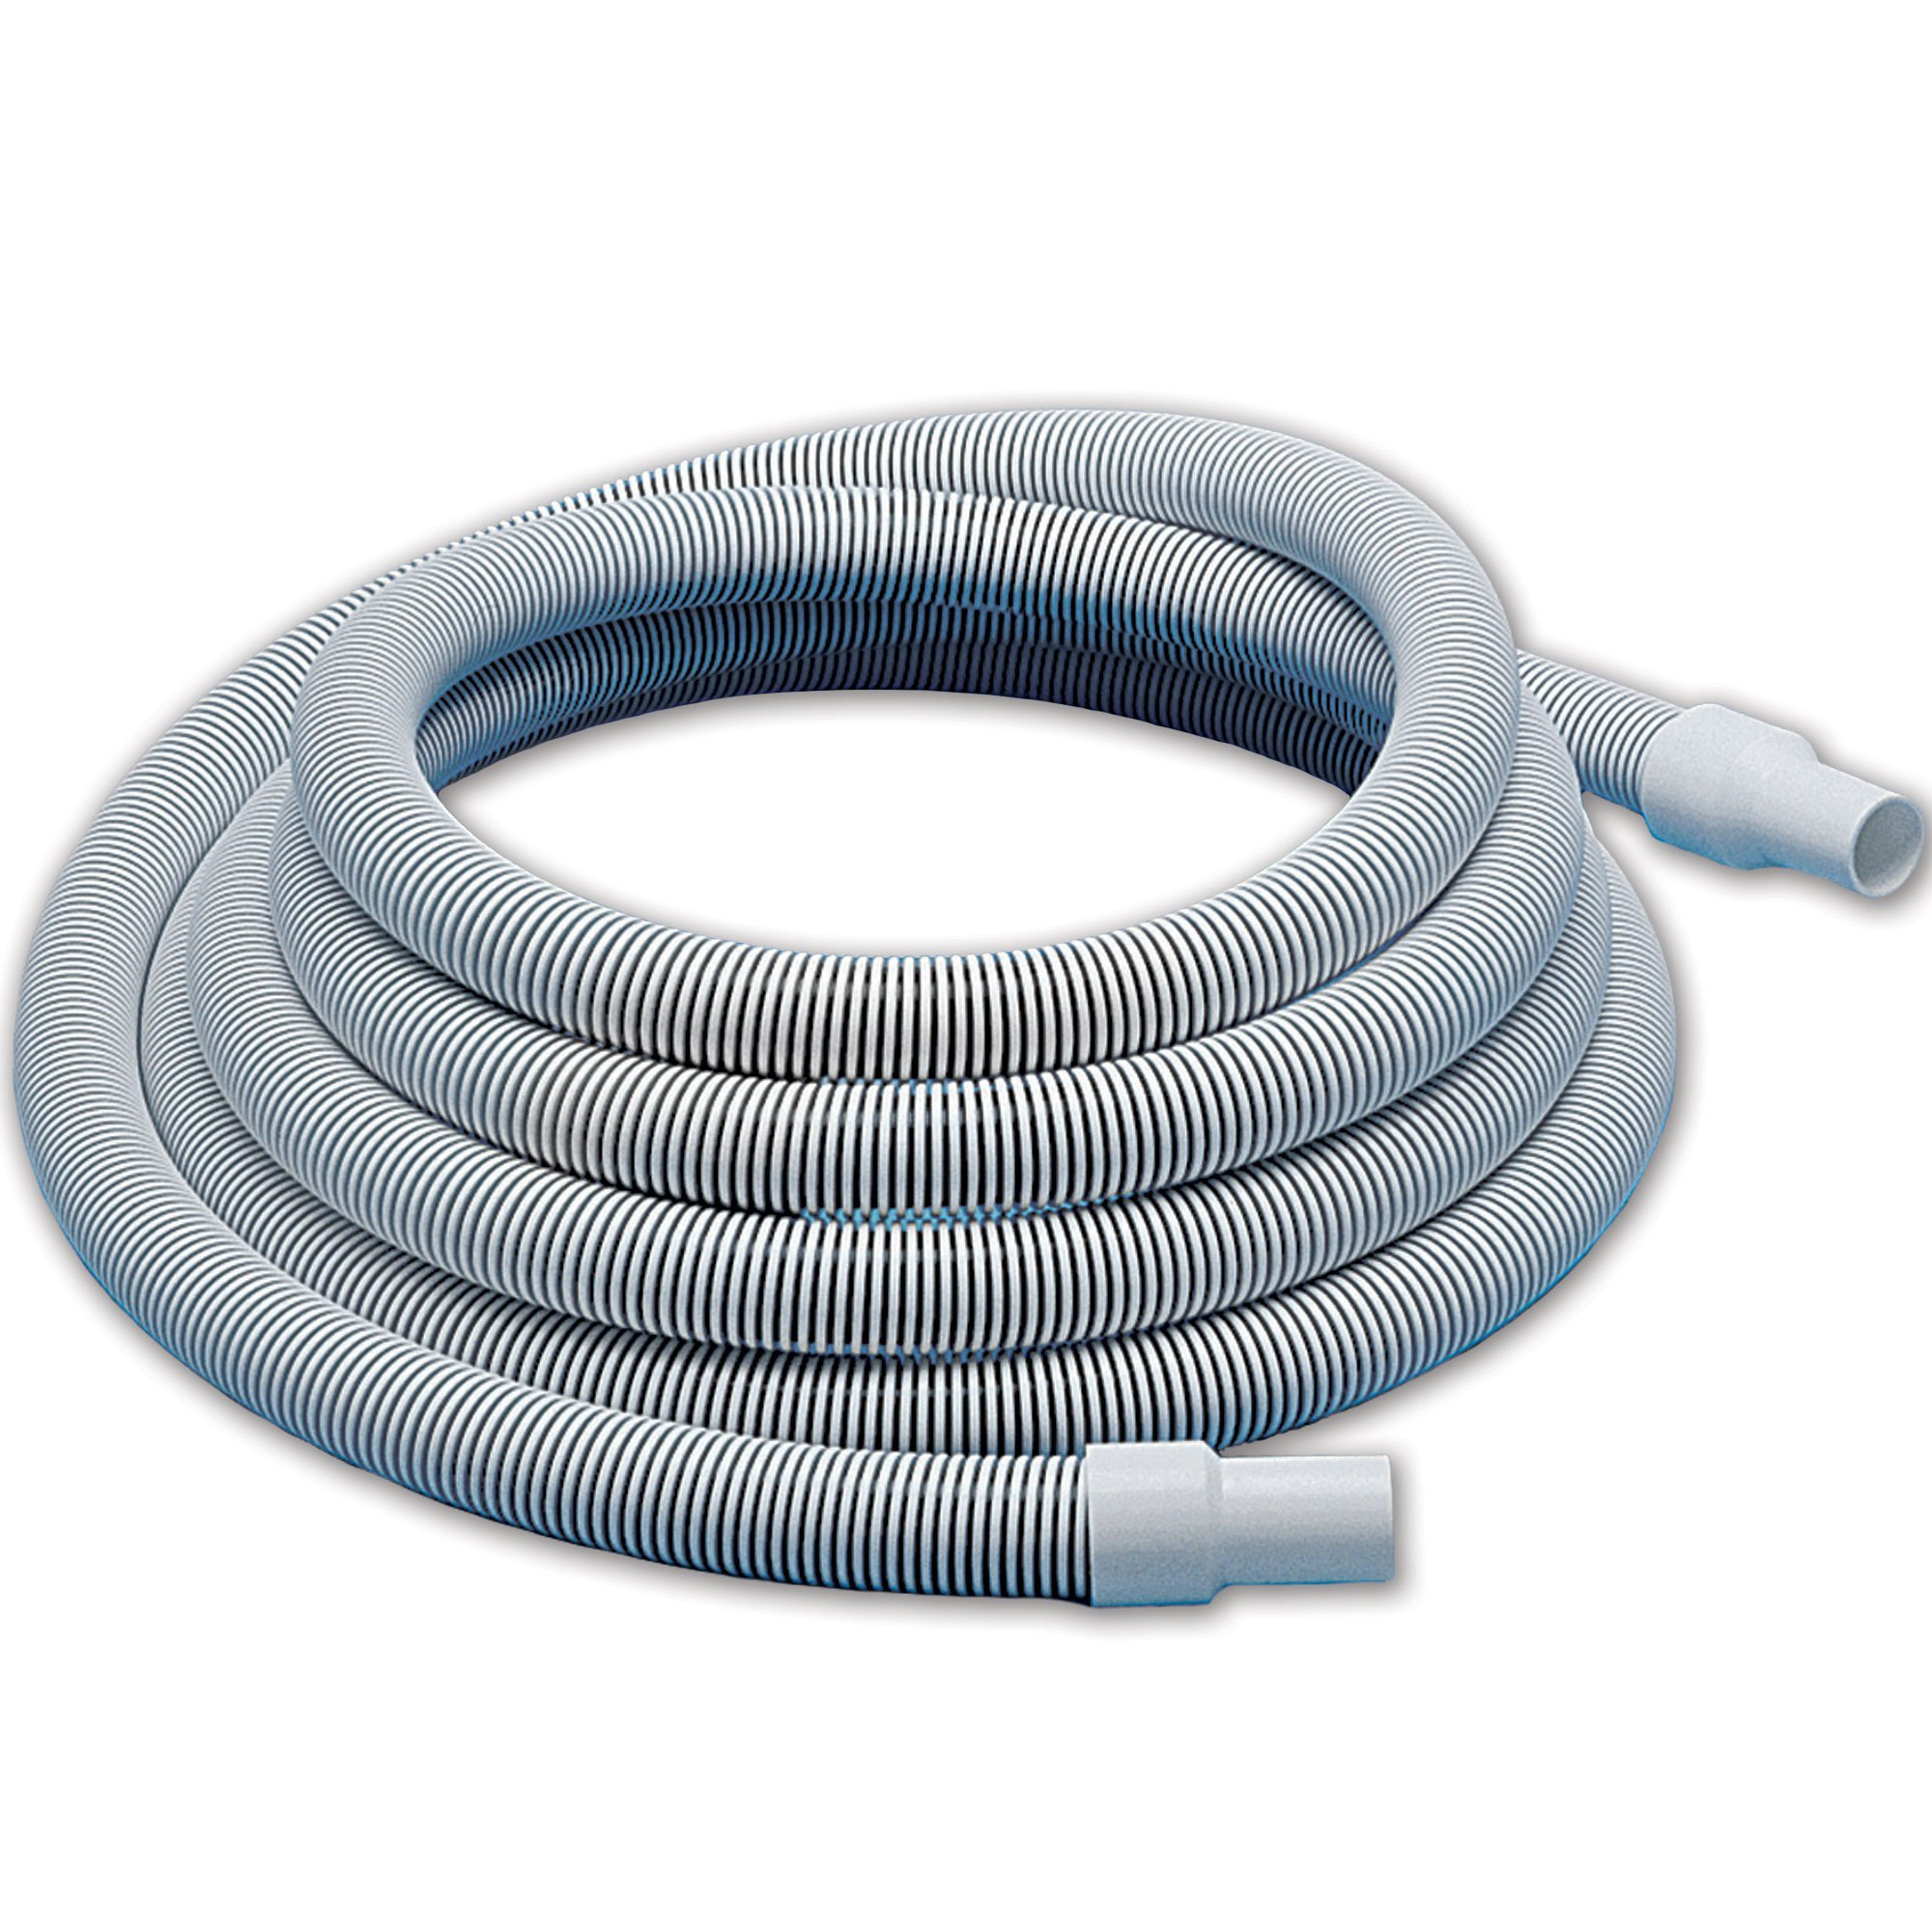 Commercial Grade Pool Vacuum Hose - 50 ft. by Pool Maxx Pool Vacuum Hose